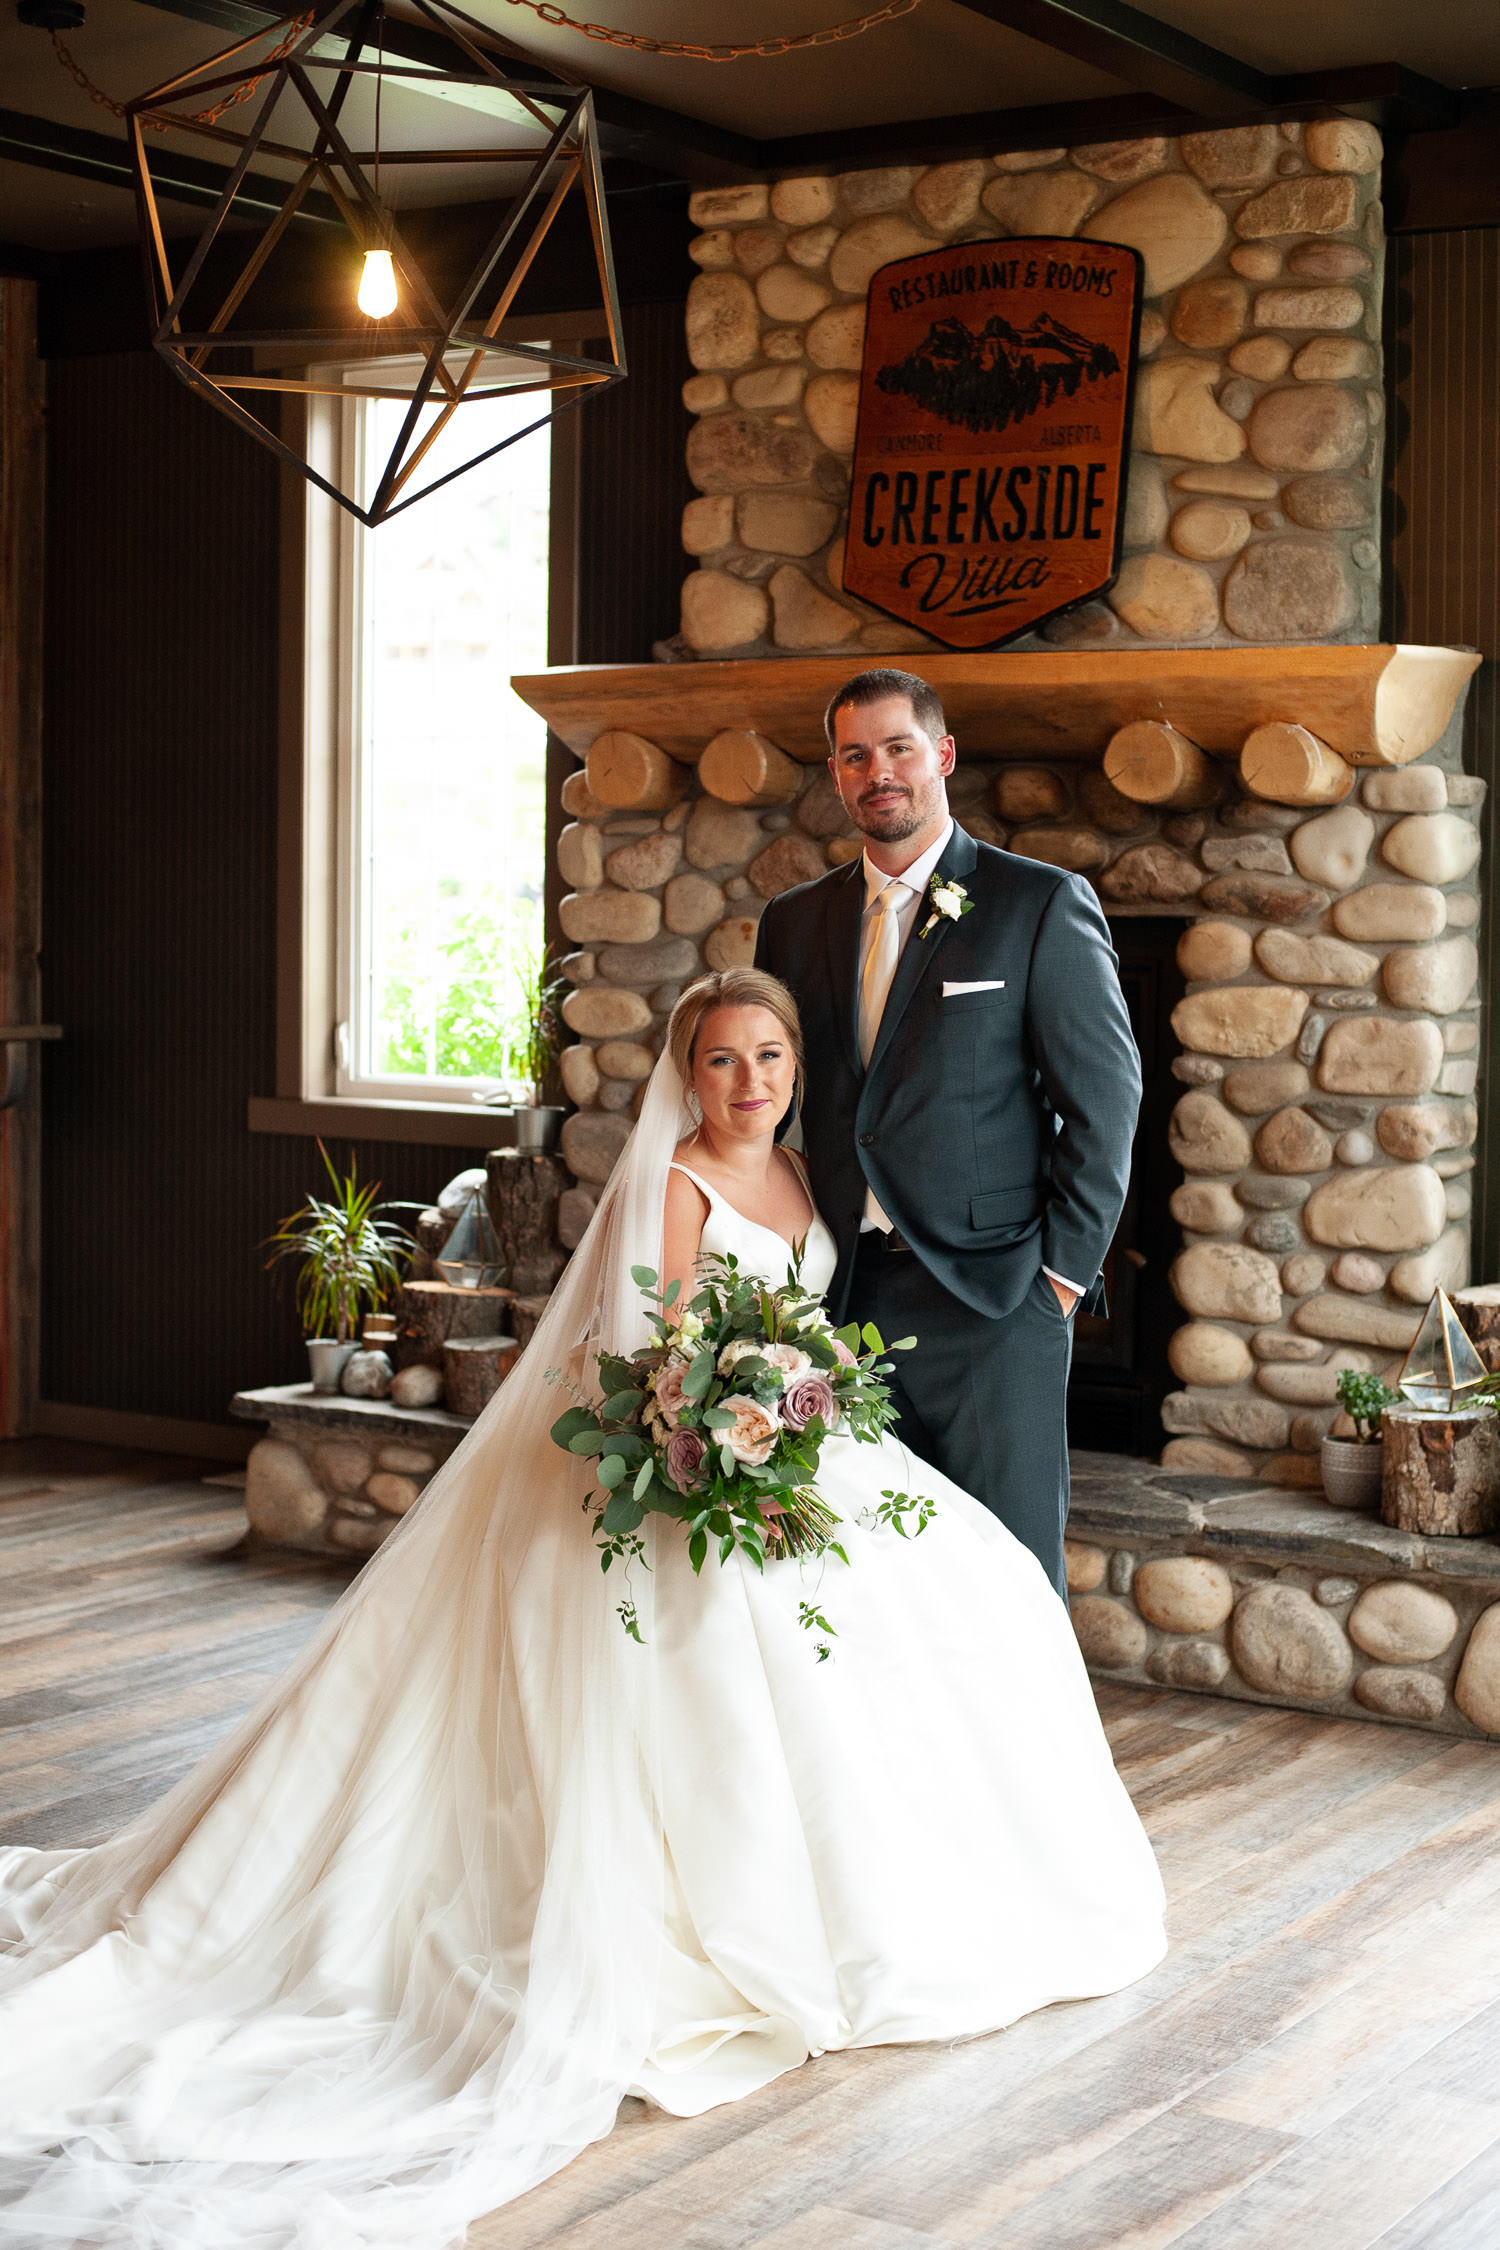 Wedding photo at Creekside Villa wedding captured by Tara Whittaker Photography